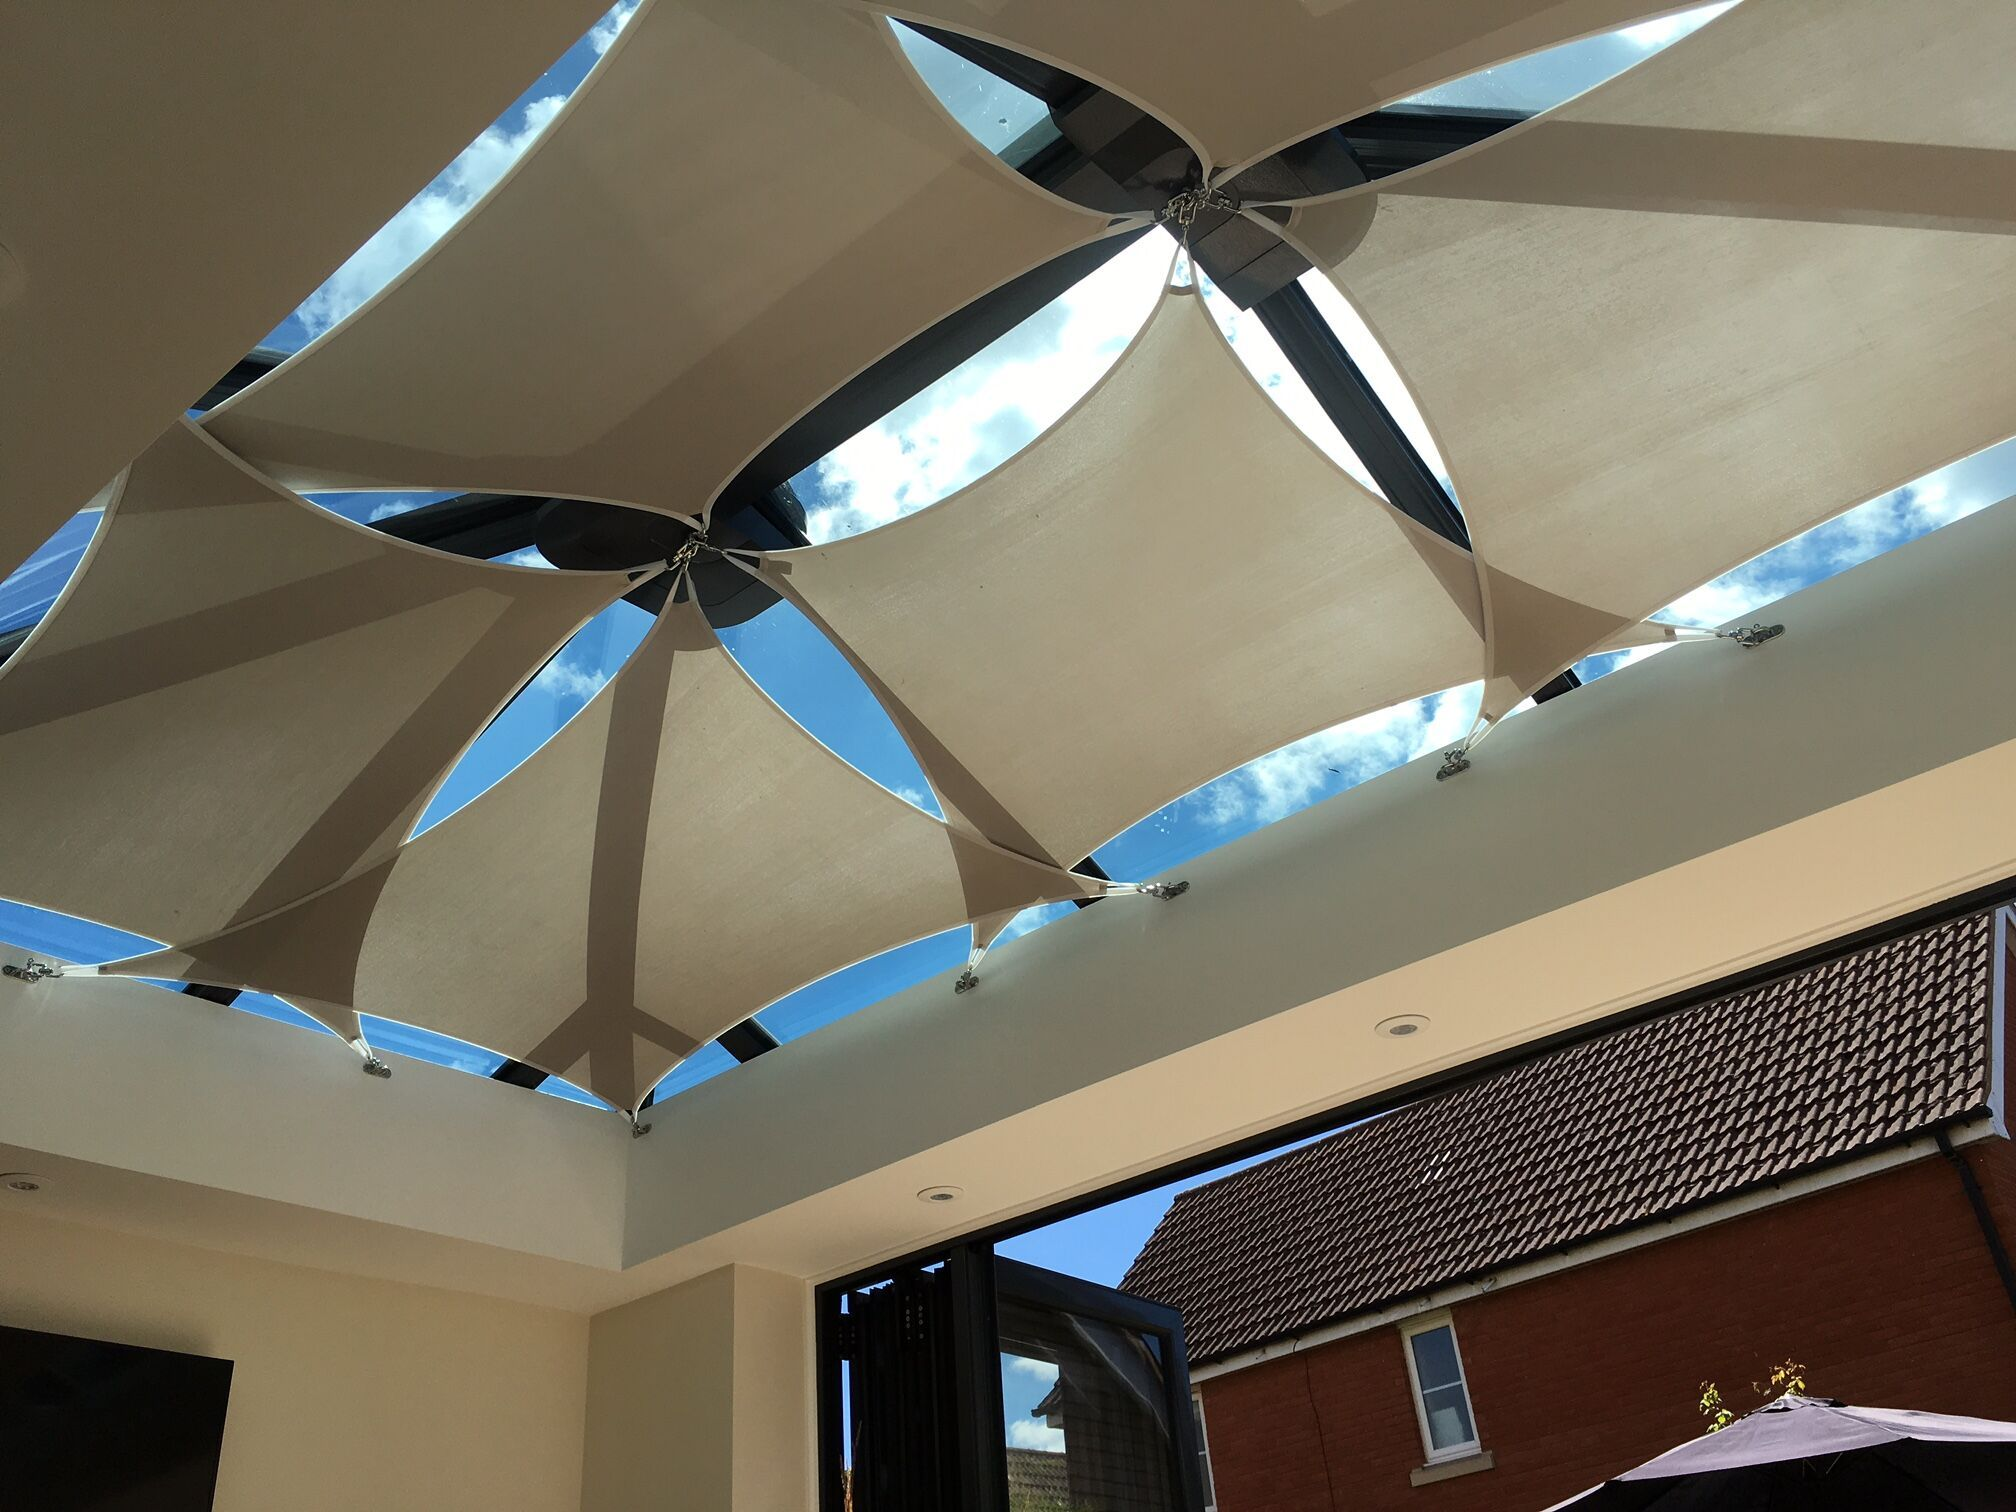 Control Glare And Heat With Inshade Sail Blinds Great For Conservatories Orangeries And Sunny Indoor Spaces Shade Sail Conservatory Roof Diy Shades